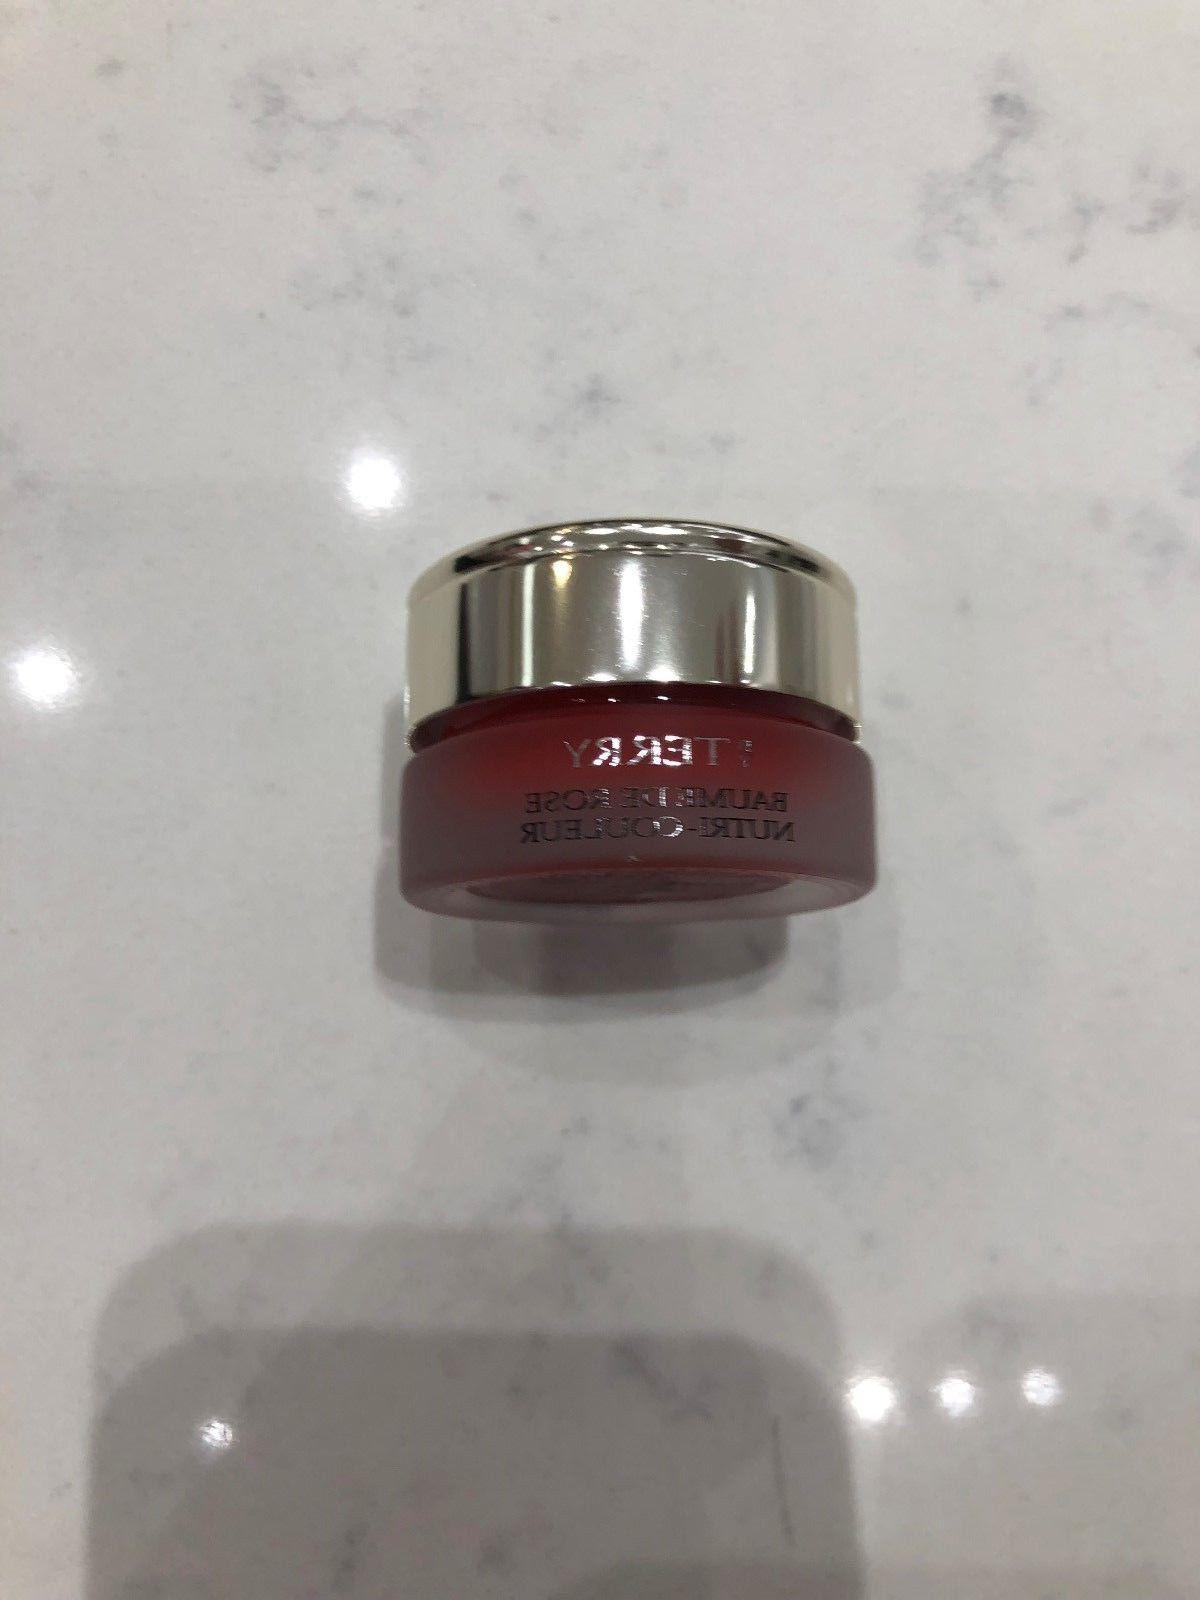 baume de rose nutri couleur cherry bomb